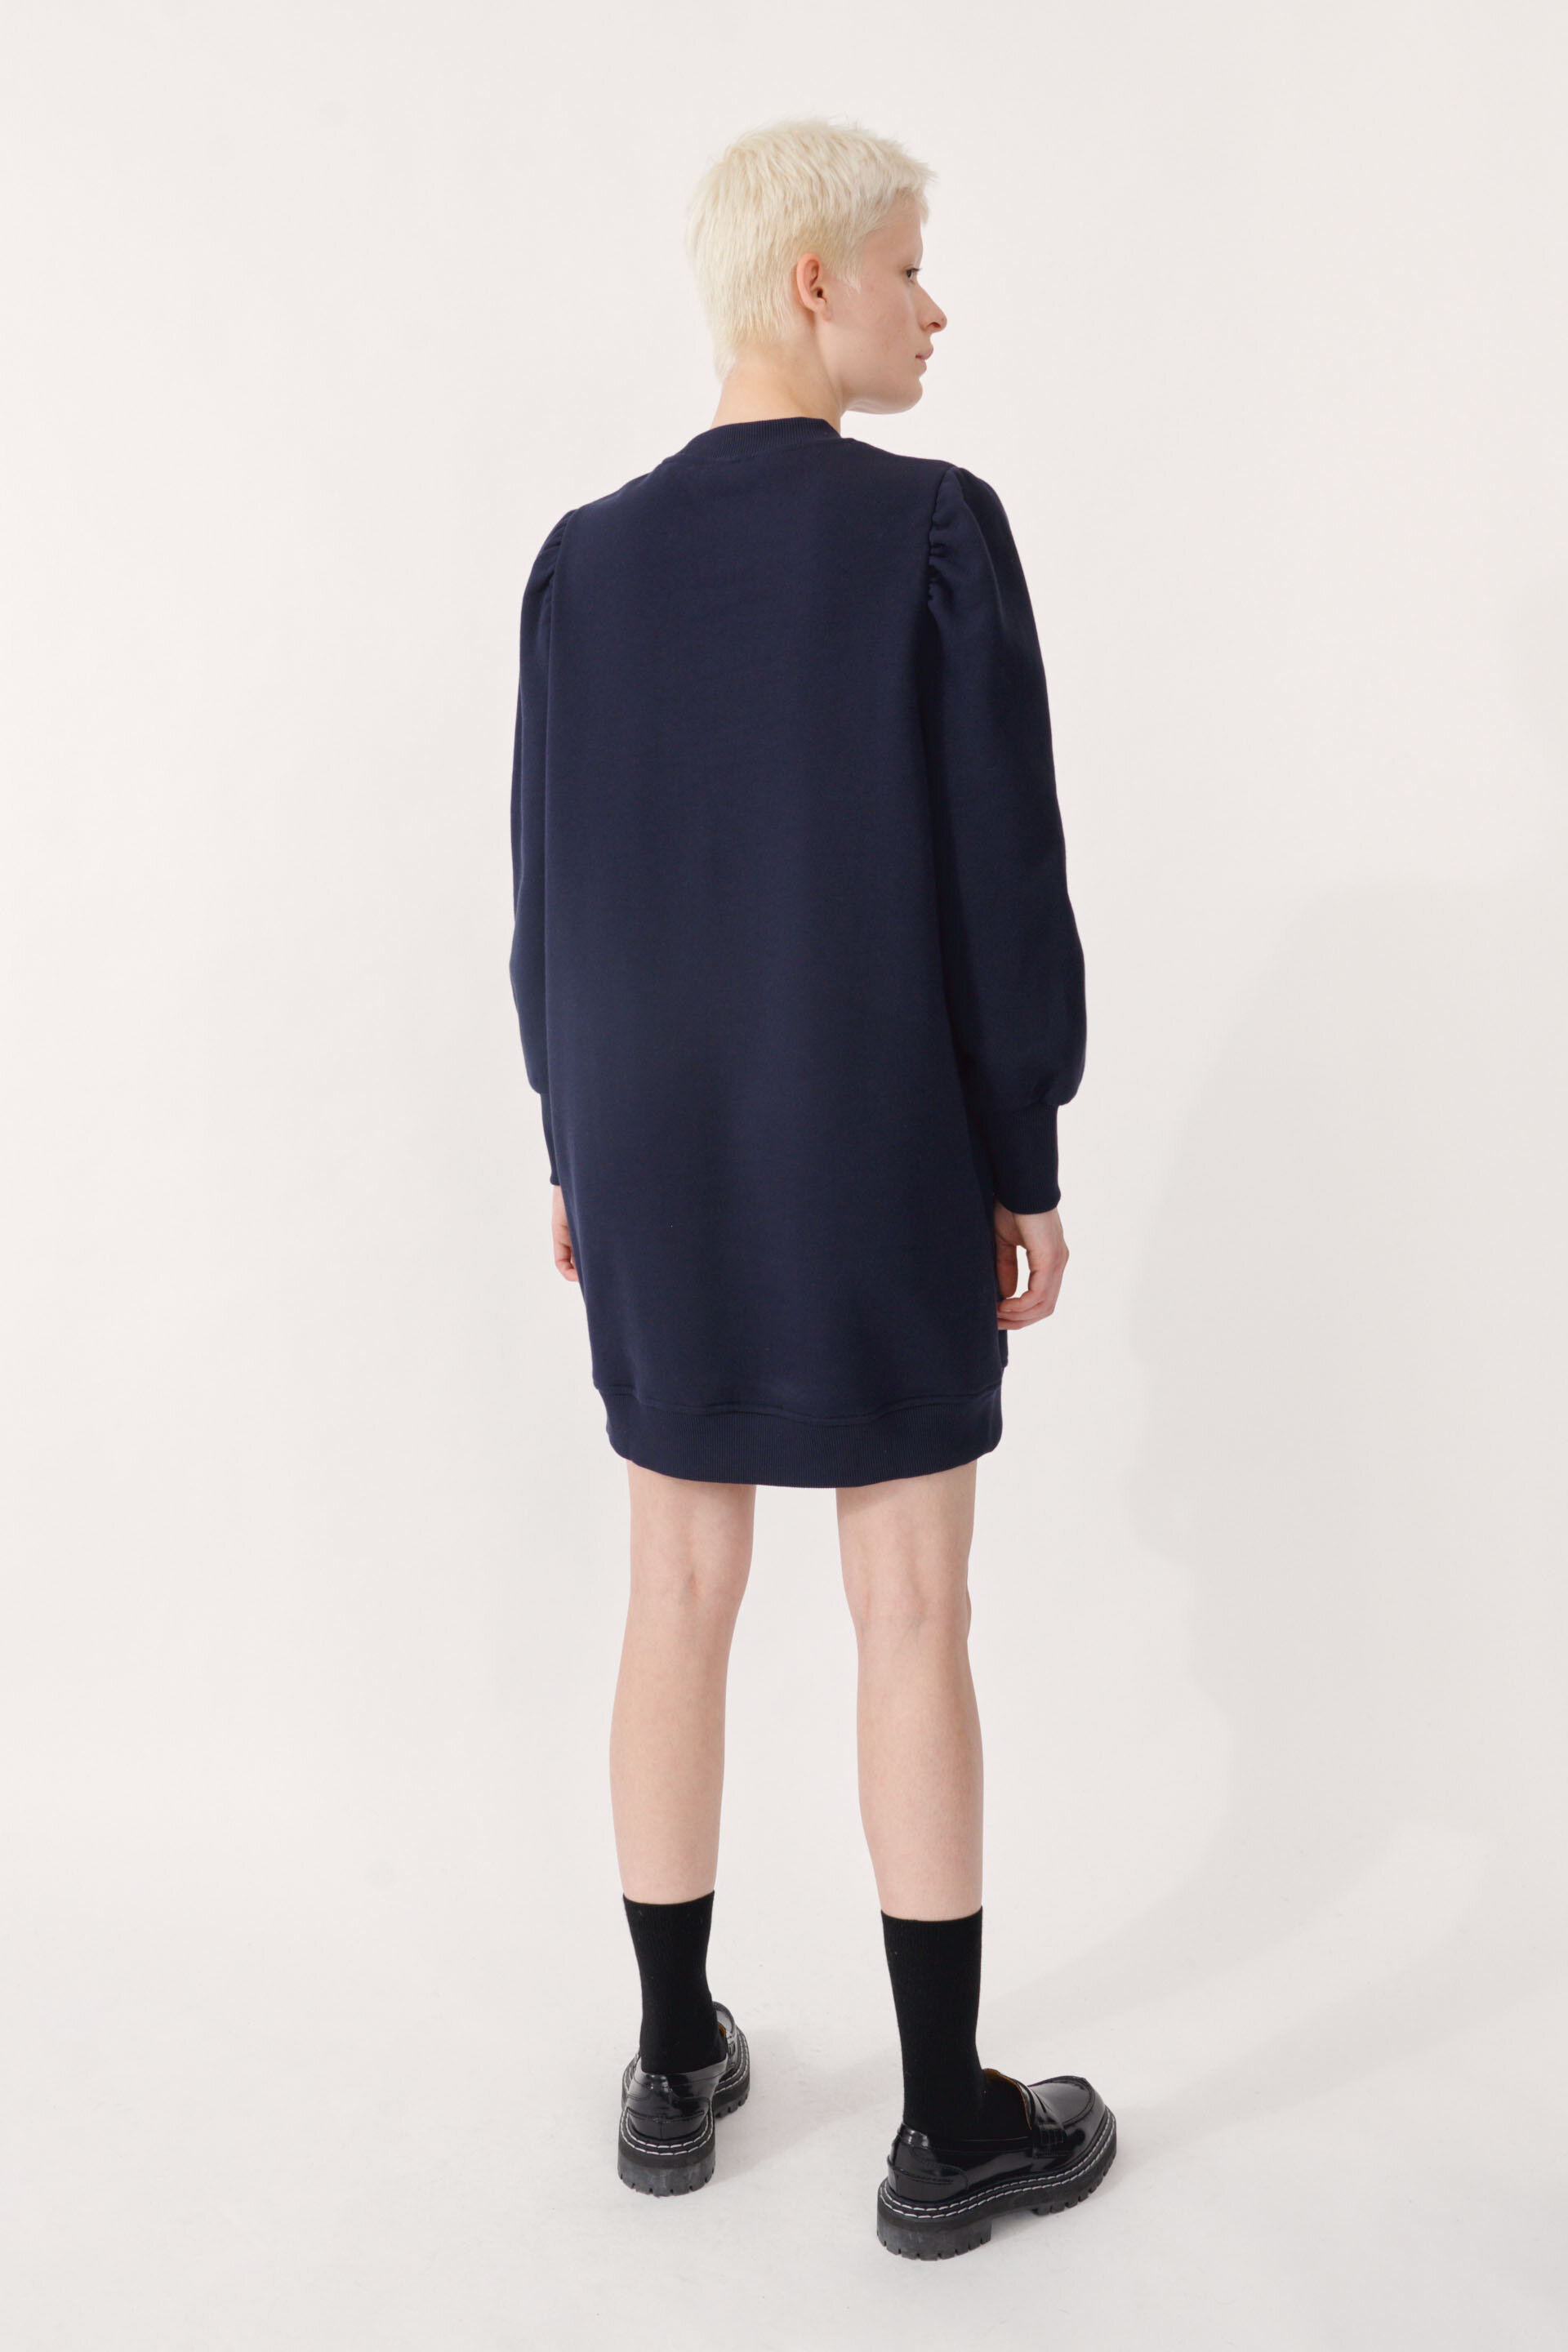 Jeen Dress Night Sky This sweatshirt dress has slightly puffed sleeves at the shoulder - detail image